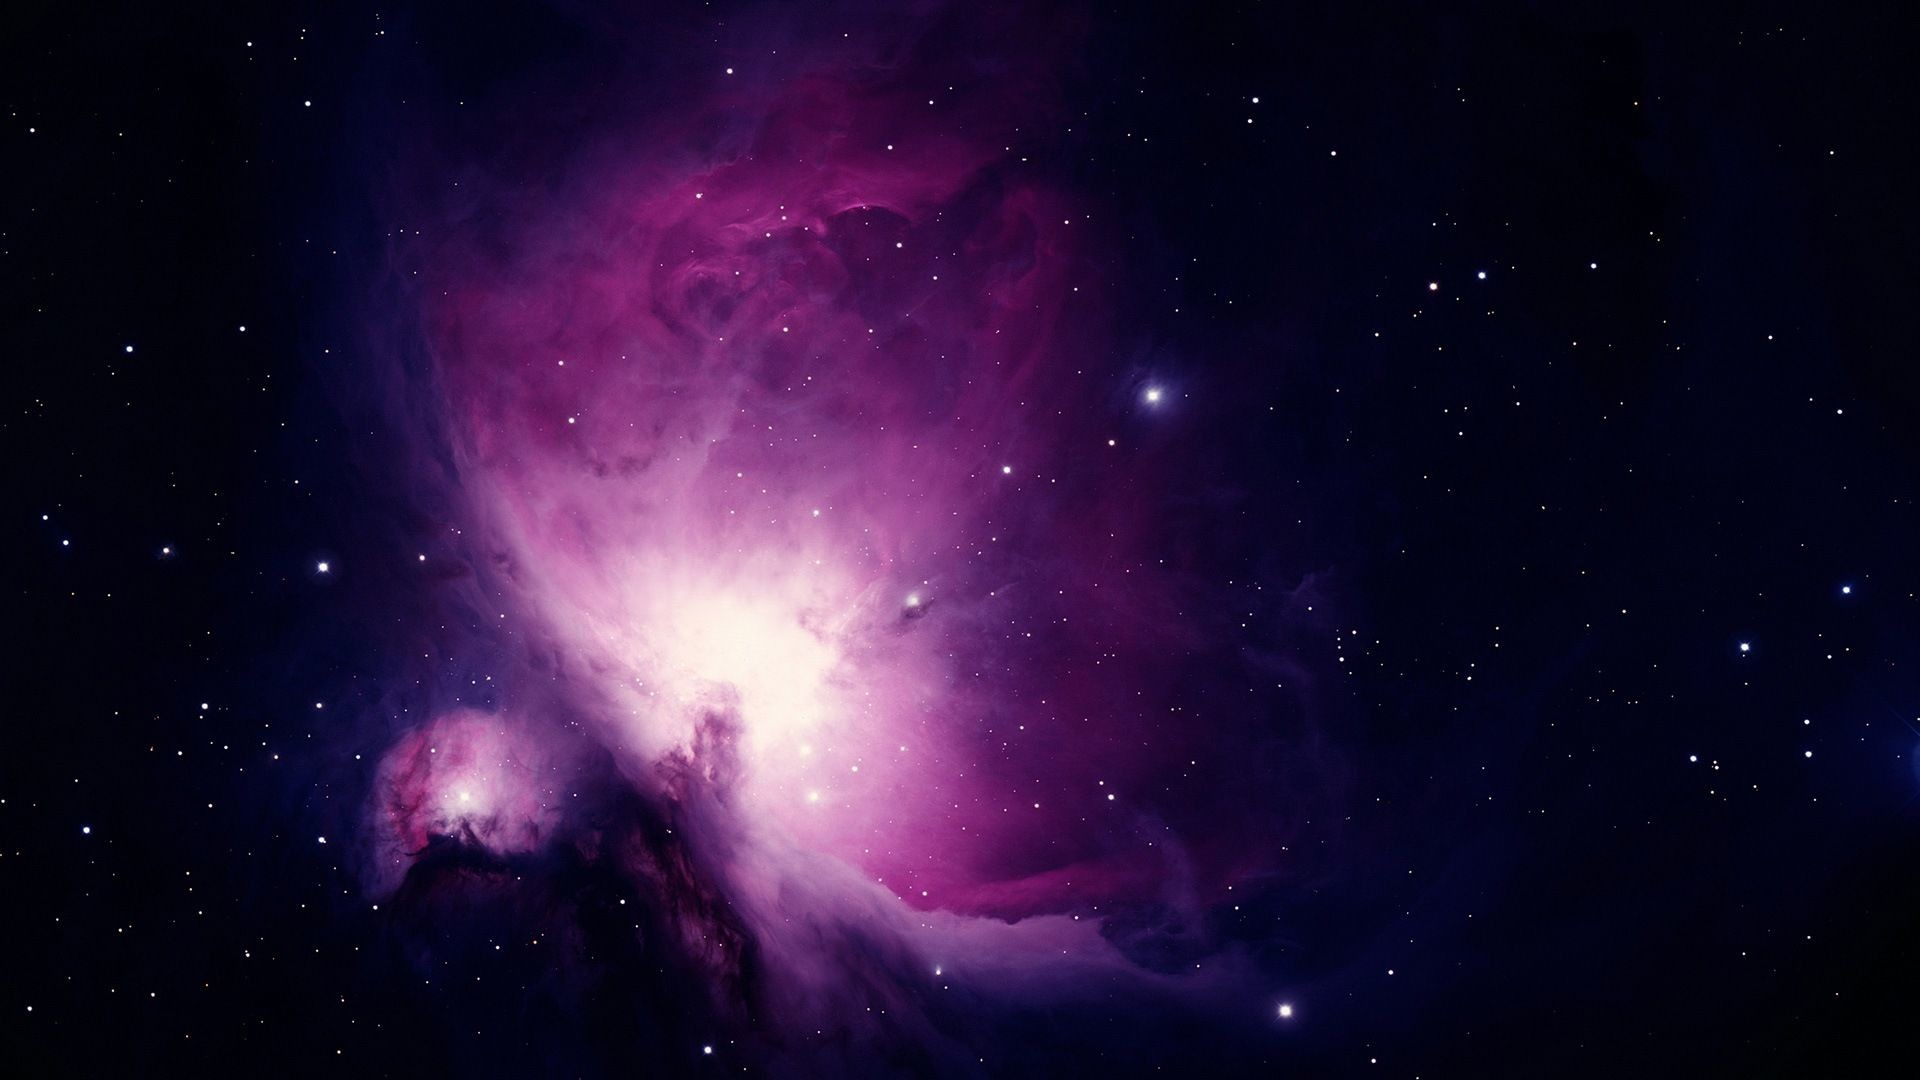 1920x1080 Purple Galaxy Wallpaper Desktop On Wallpaper Hd 1920 x 1080 px 623.08 KB  blue iphone cross